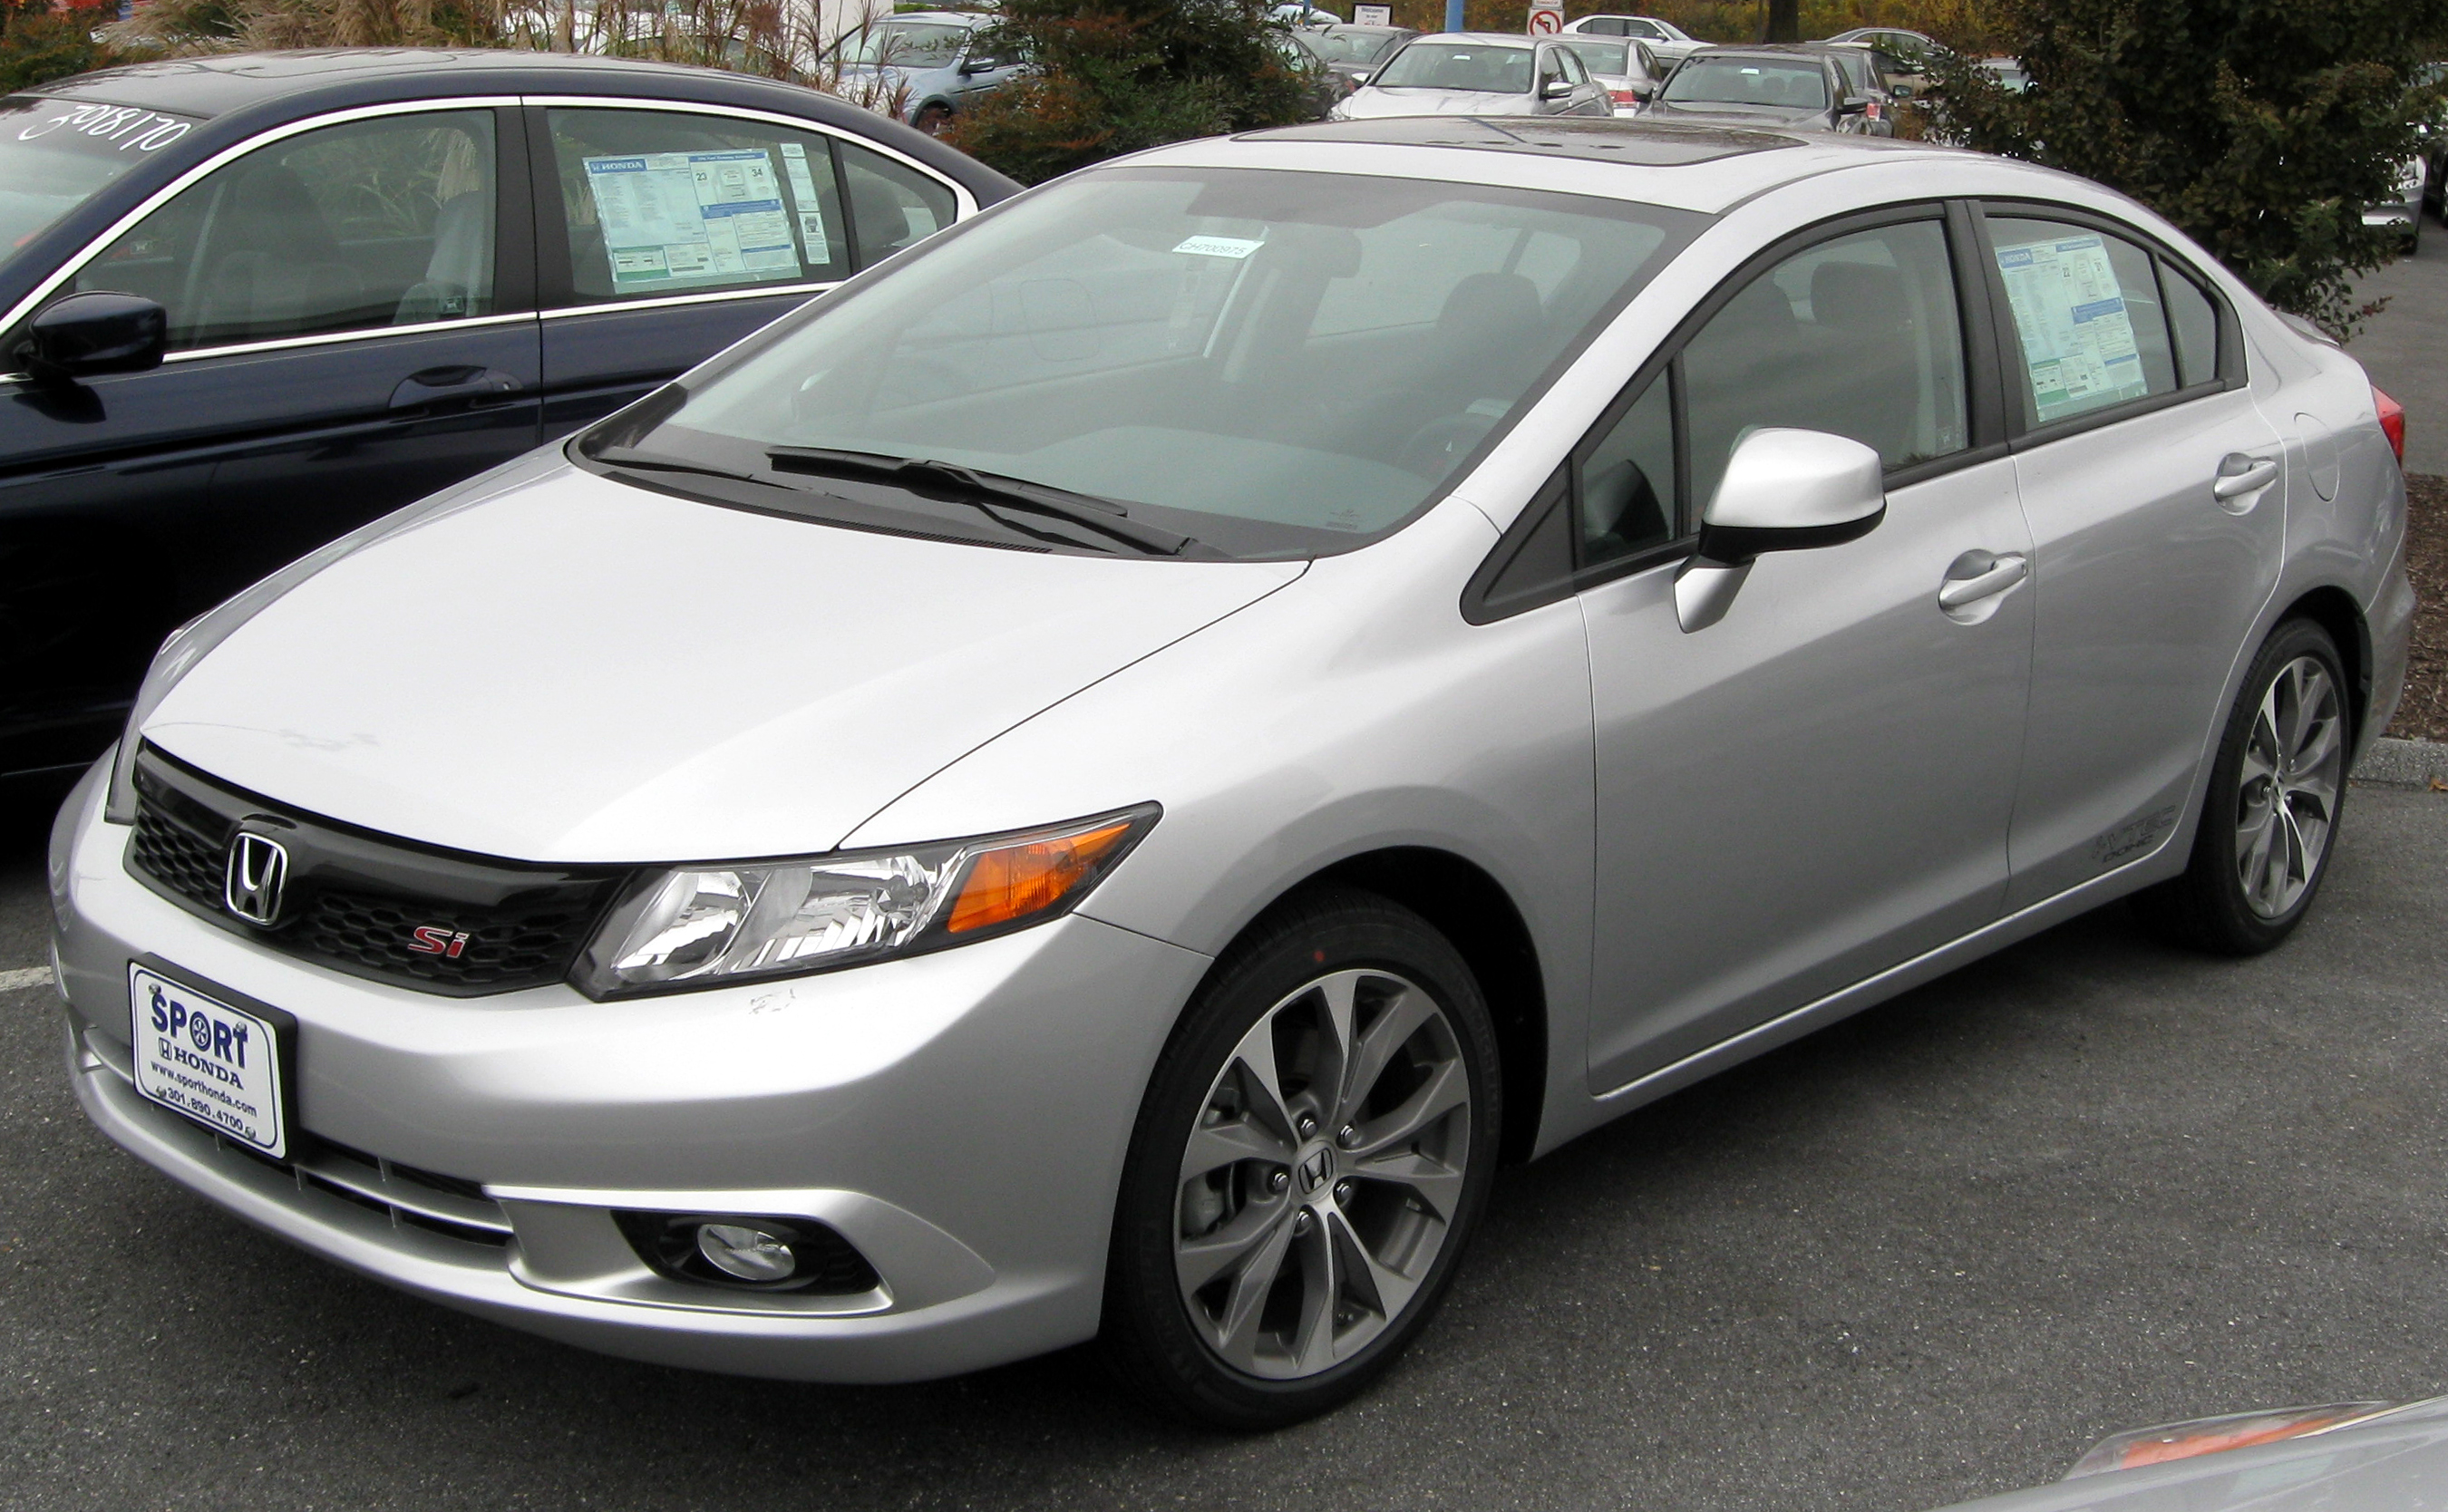 Description 2012 Honda Civic Si Sedan   11 10 2011